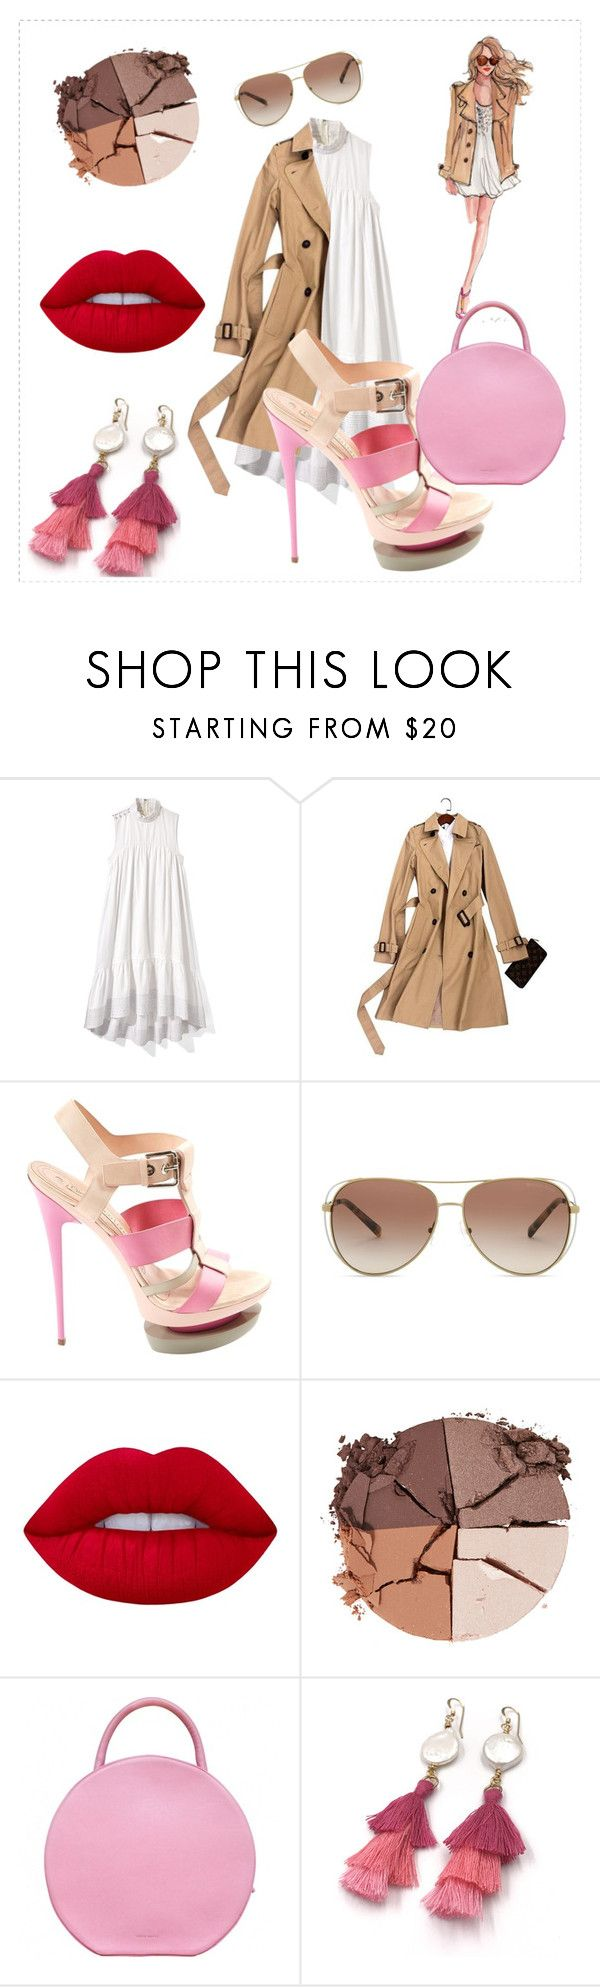 """""""Beige Trench"""" by andrealorena-7879 ❤ liked on Polyvore featuring 3.1 Phillip Lim, Gianmarco Lorenzi, Michael Kors, Lime Crime, lilah b. and Mansur Gavriel"""